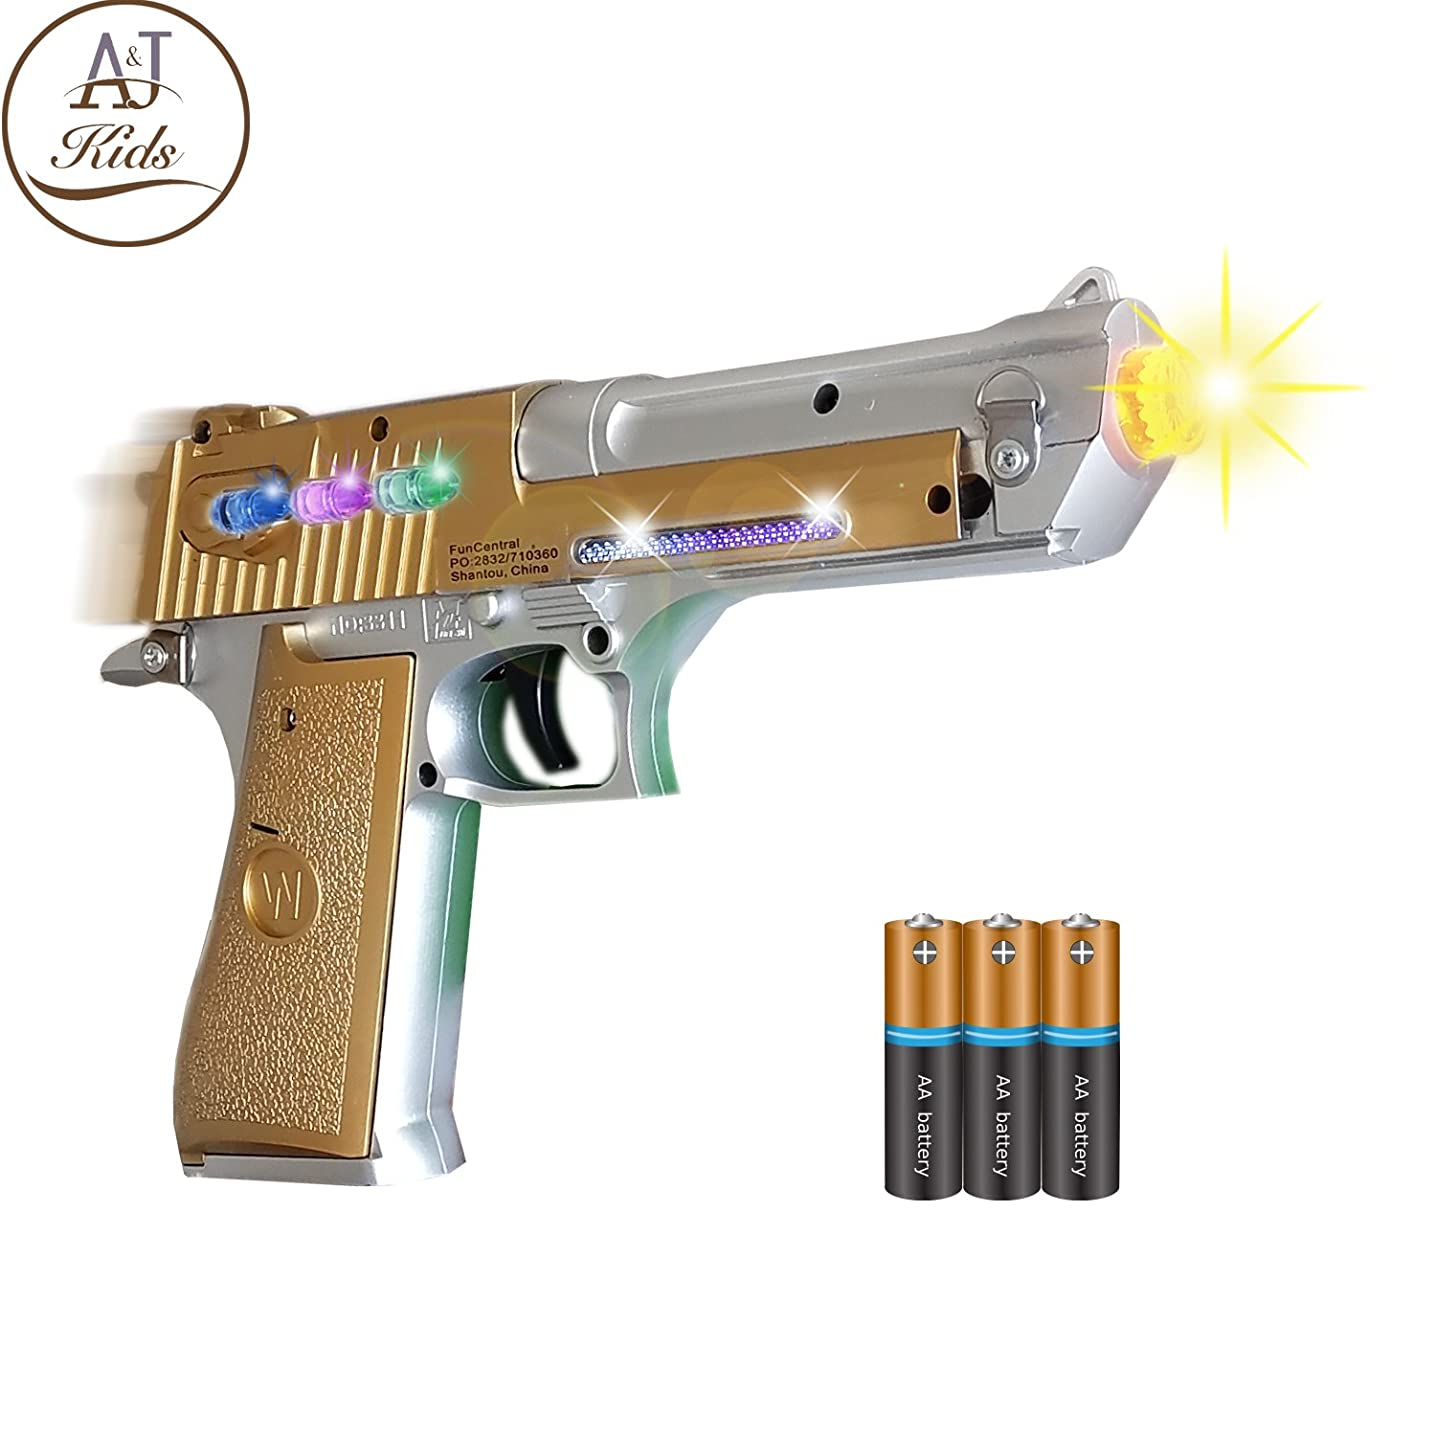 ANJ Kids Toys - Pretend Play Toy Gun for Boys | Toy Pistol Gun with Flashing Lights and Sound | Detailed Craft with Rapid Firing and Vibrating (Age 3+, Batteries Included) (Golden Pistol)